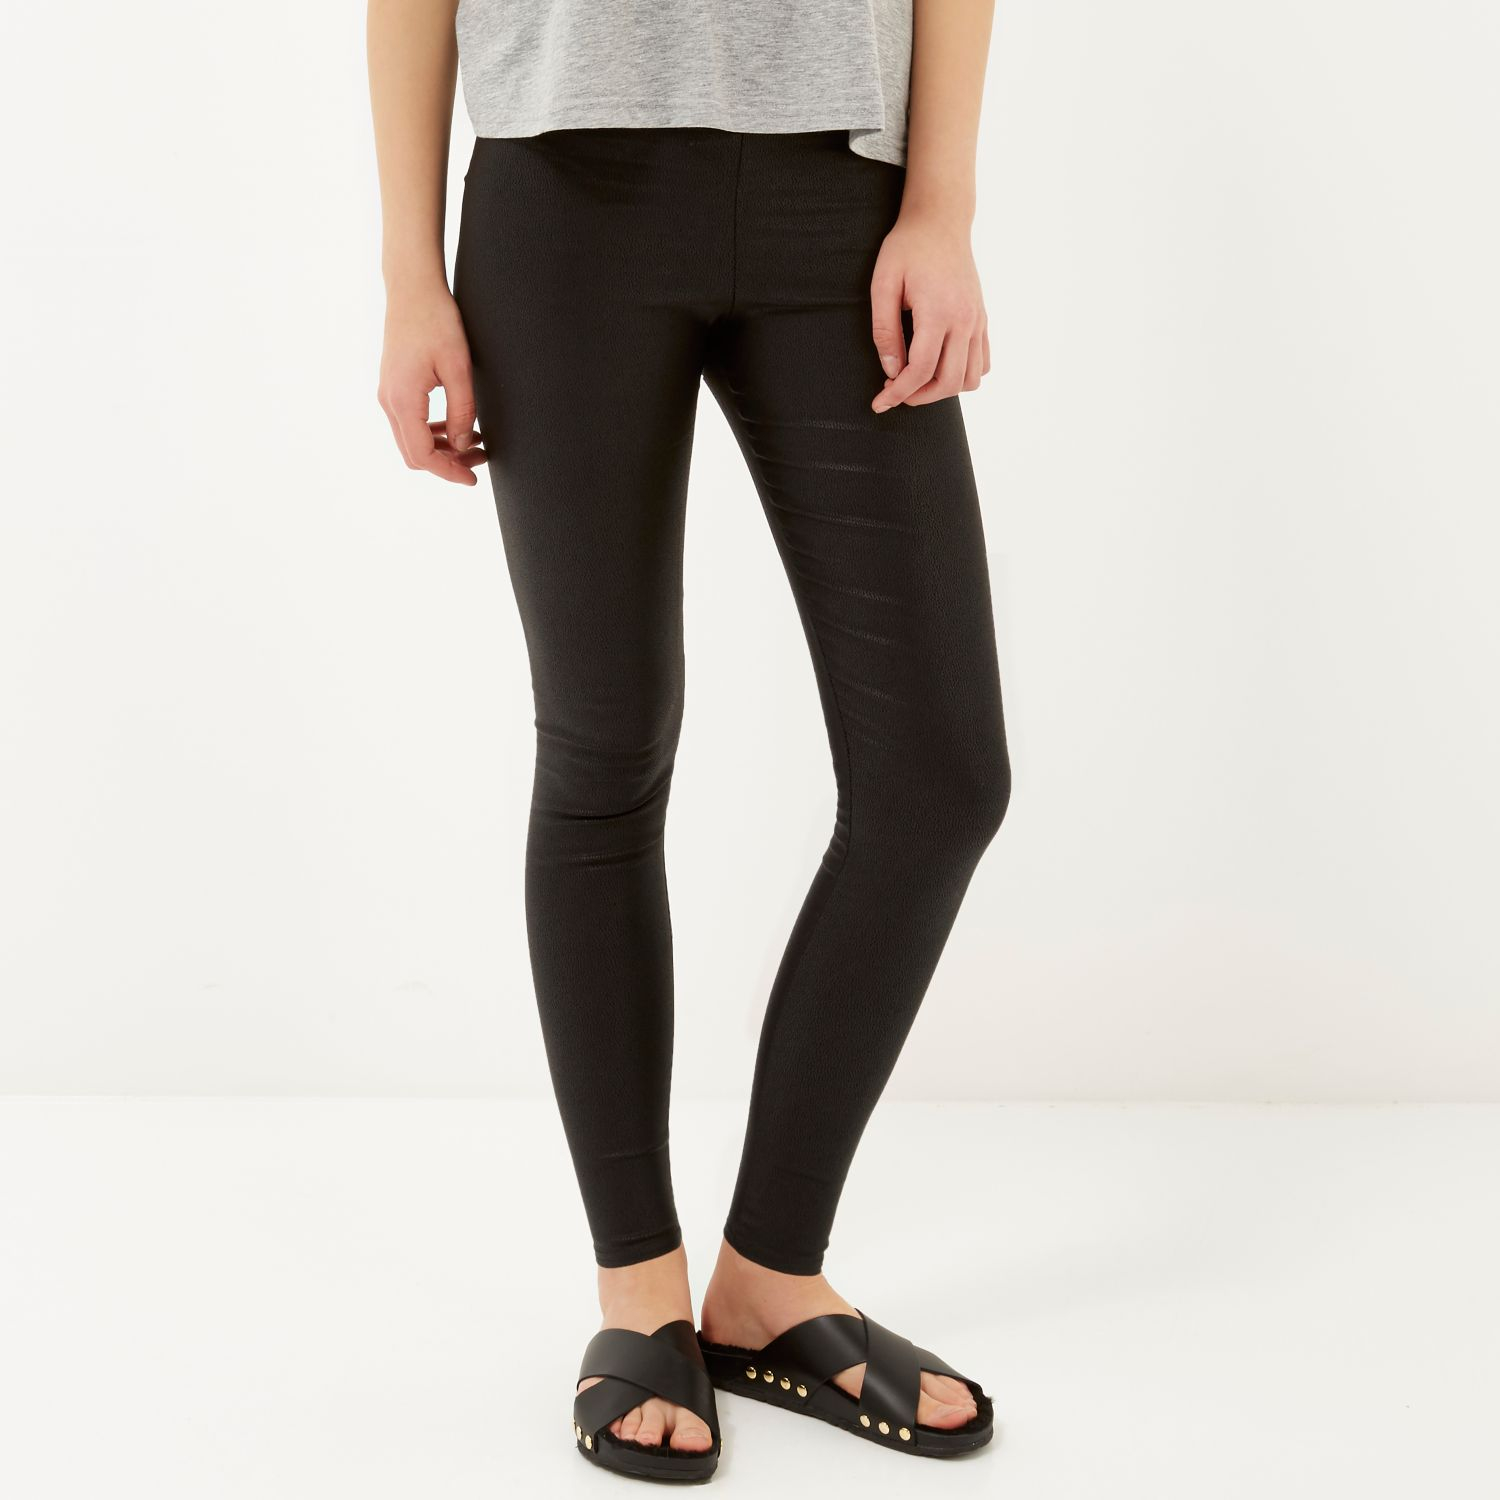 River island Black Cracked Coated High Waisted Leggings in ...